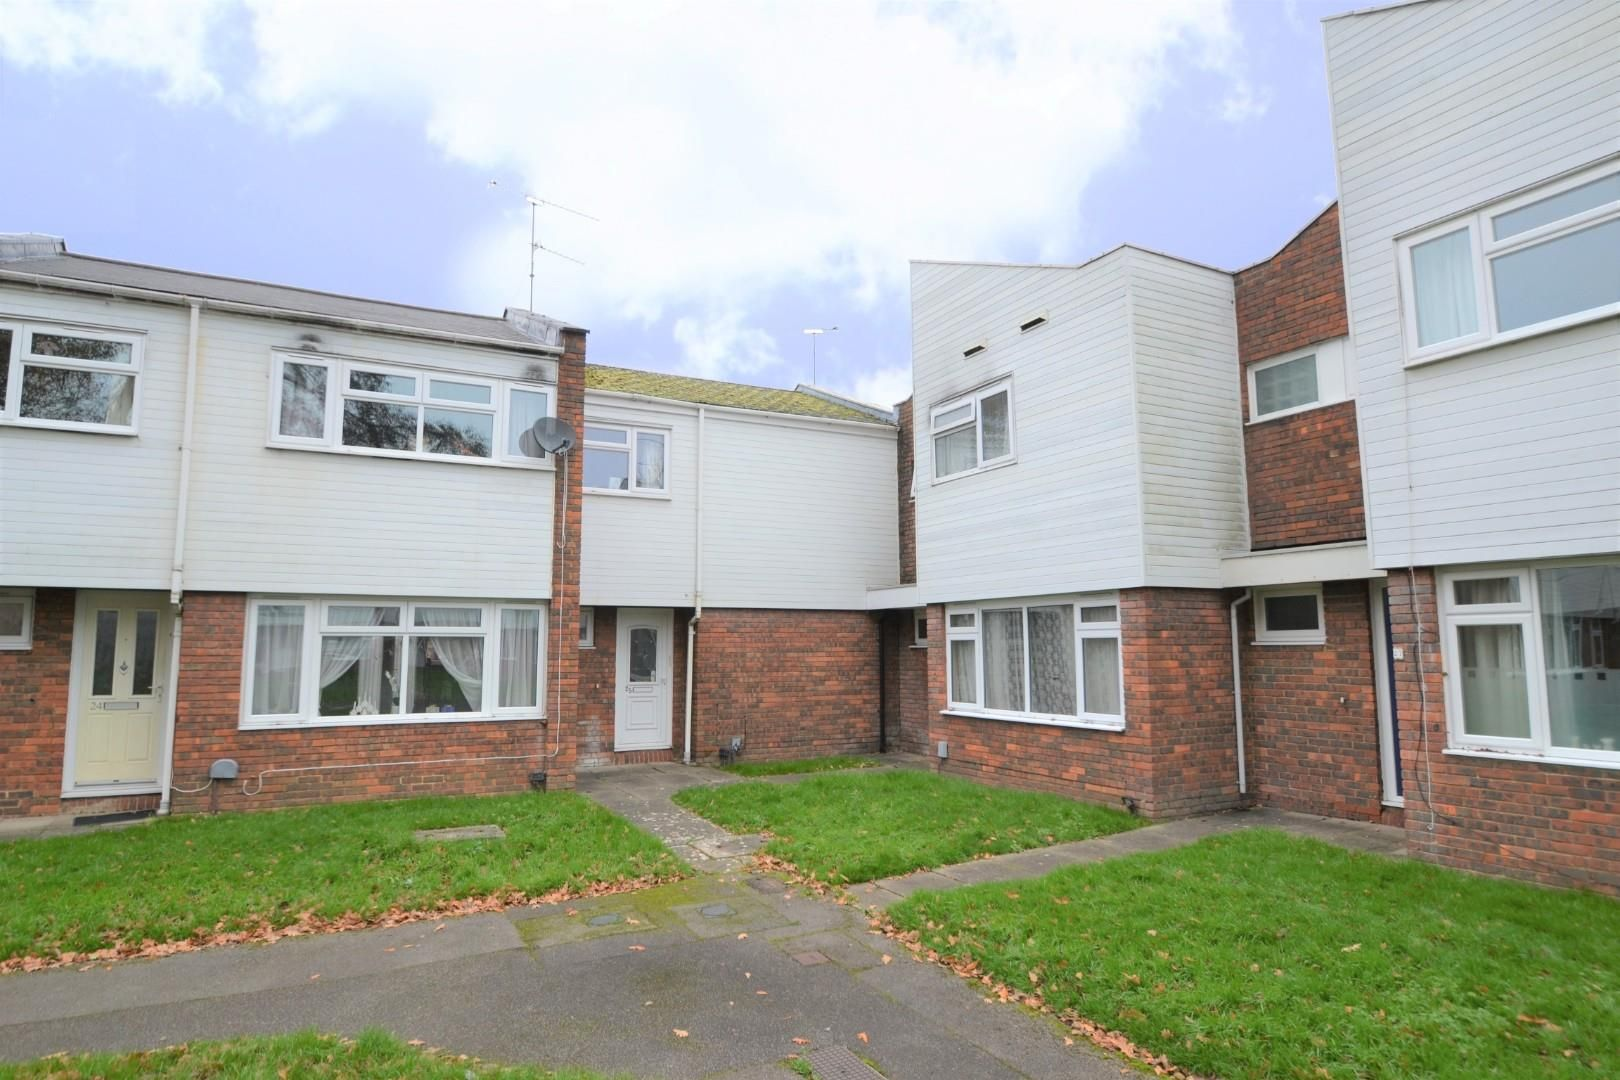 3 bed terraced for sale, GU14